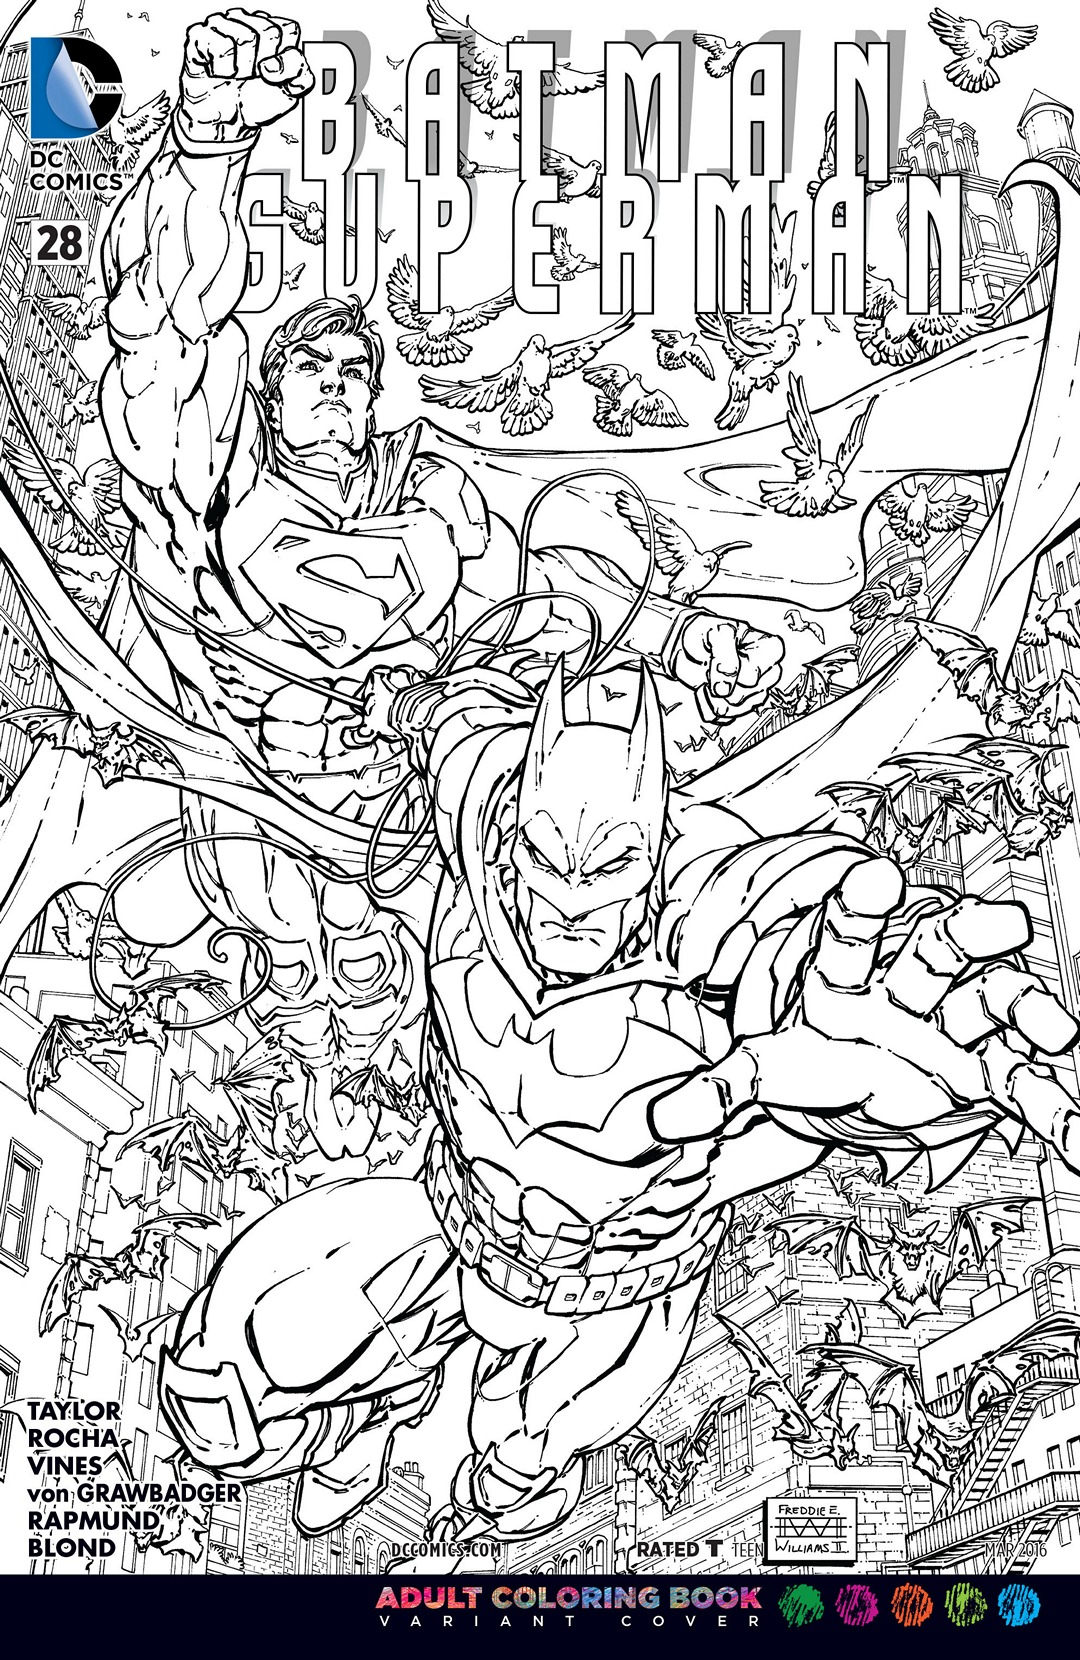 image batman superman vol 1 28 coloring book variant jpg